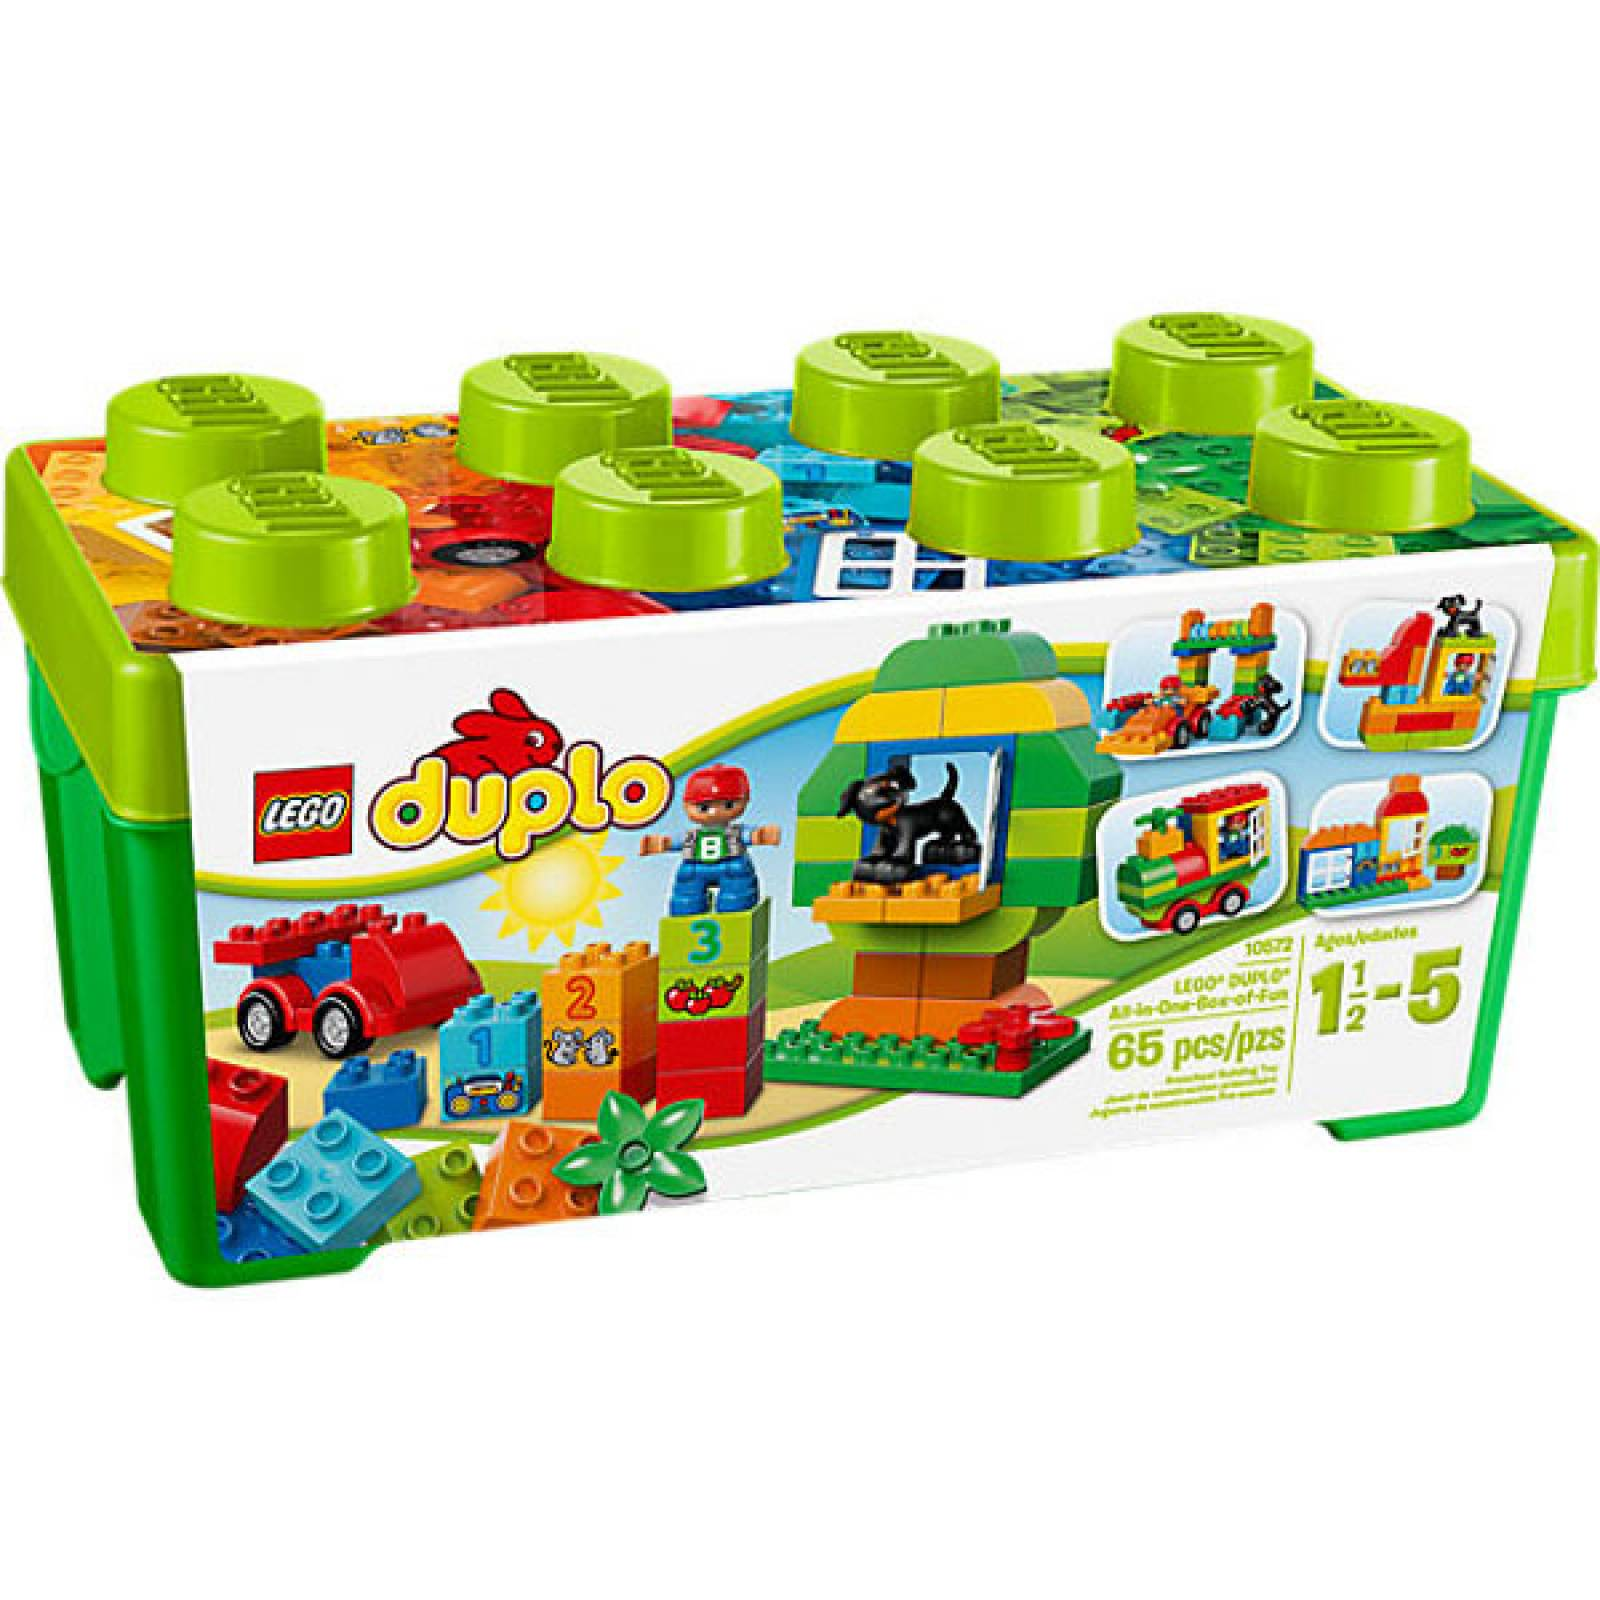 LEGO DUPLO All In One Box Of Fun 10572 thumbnails